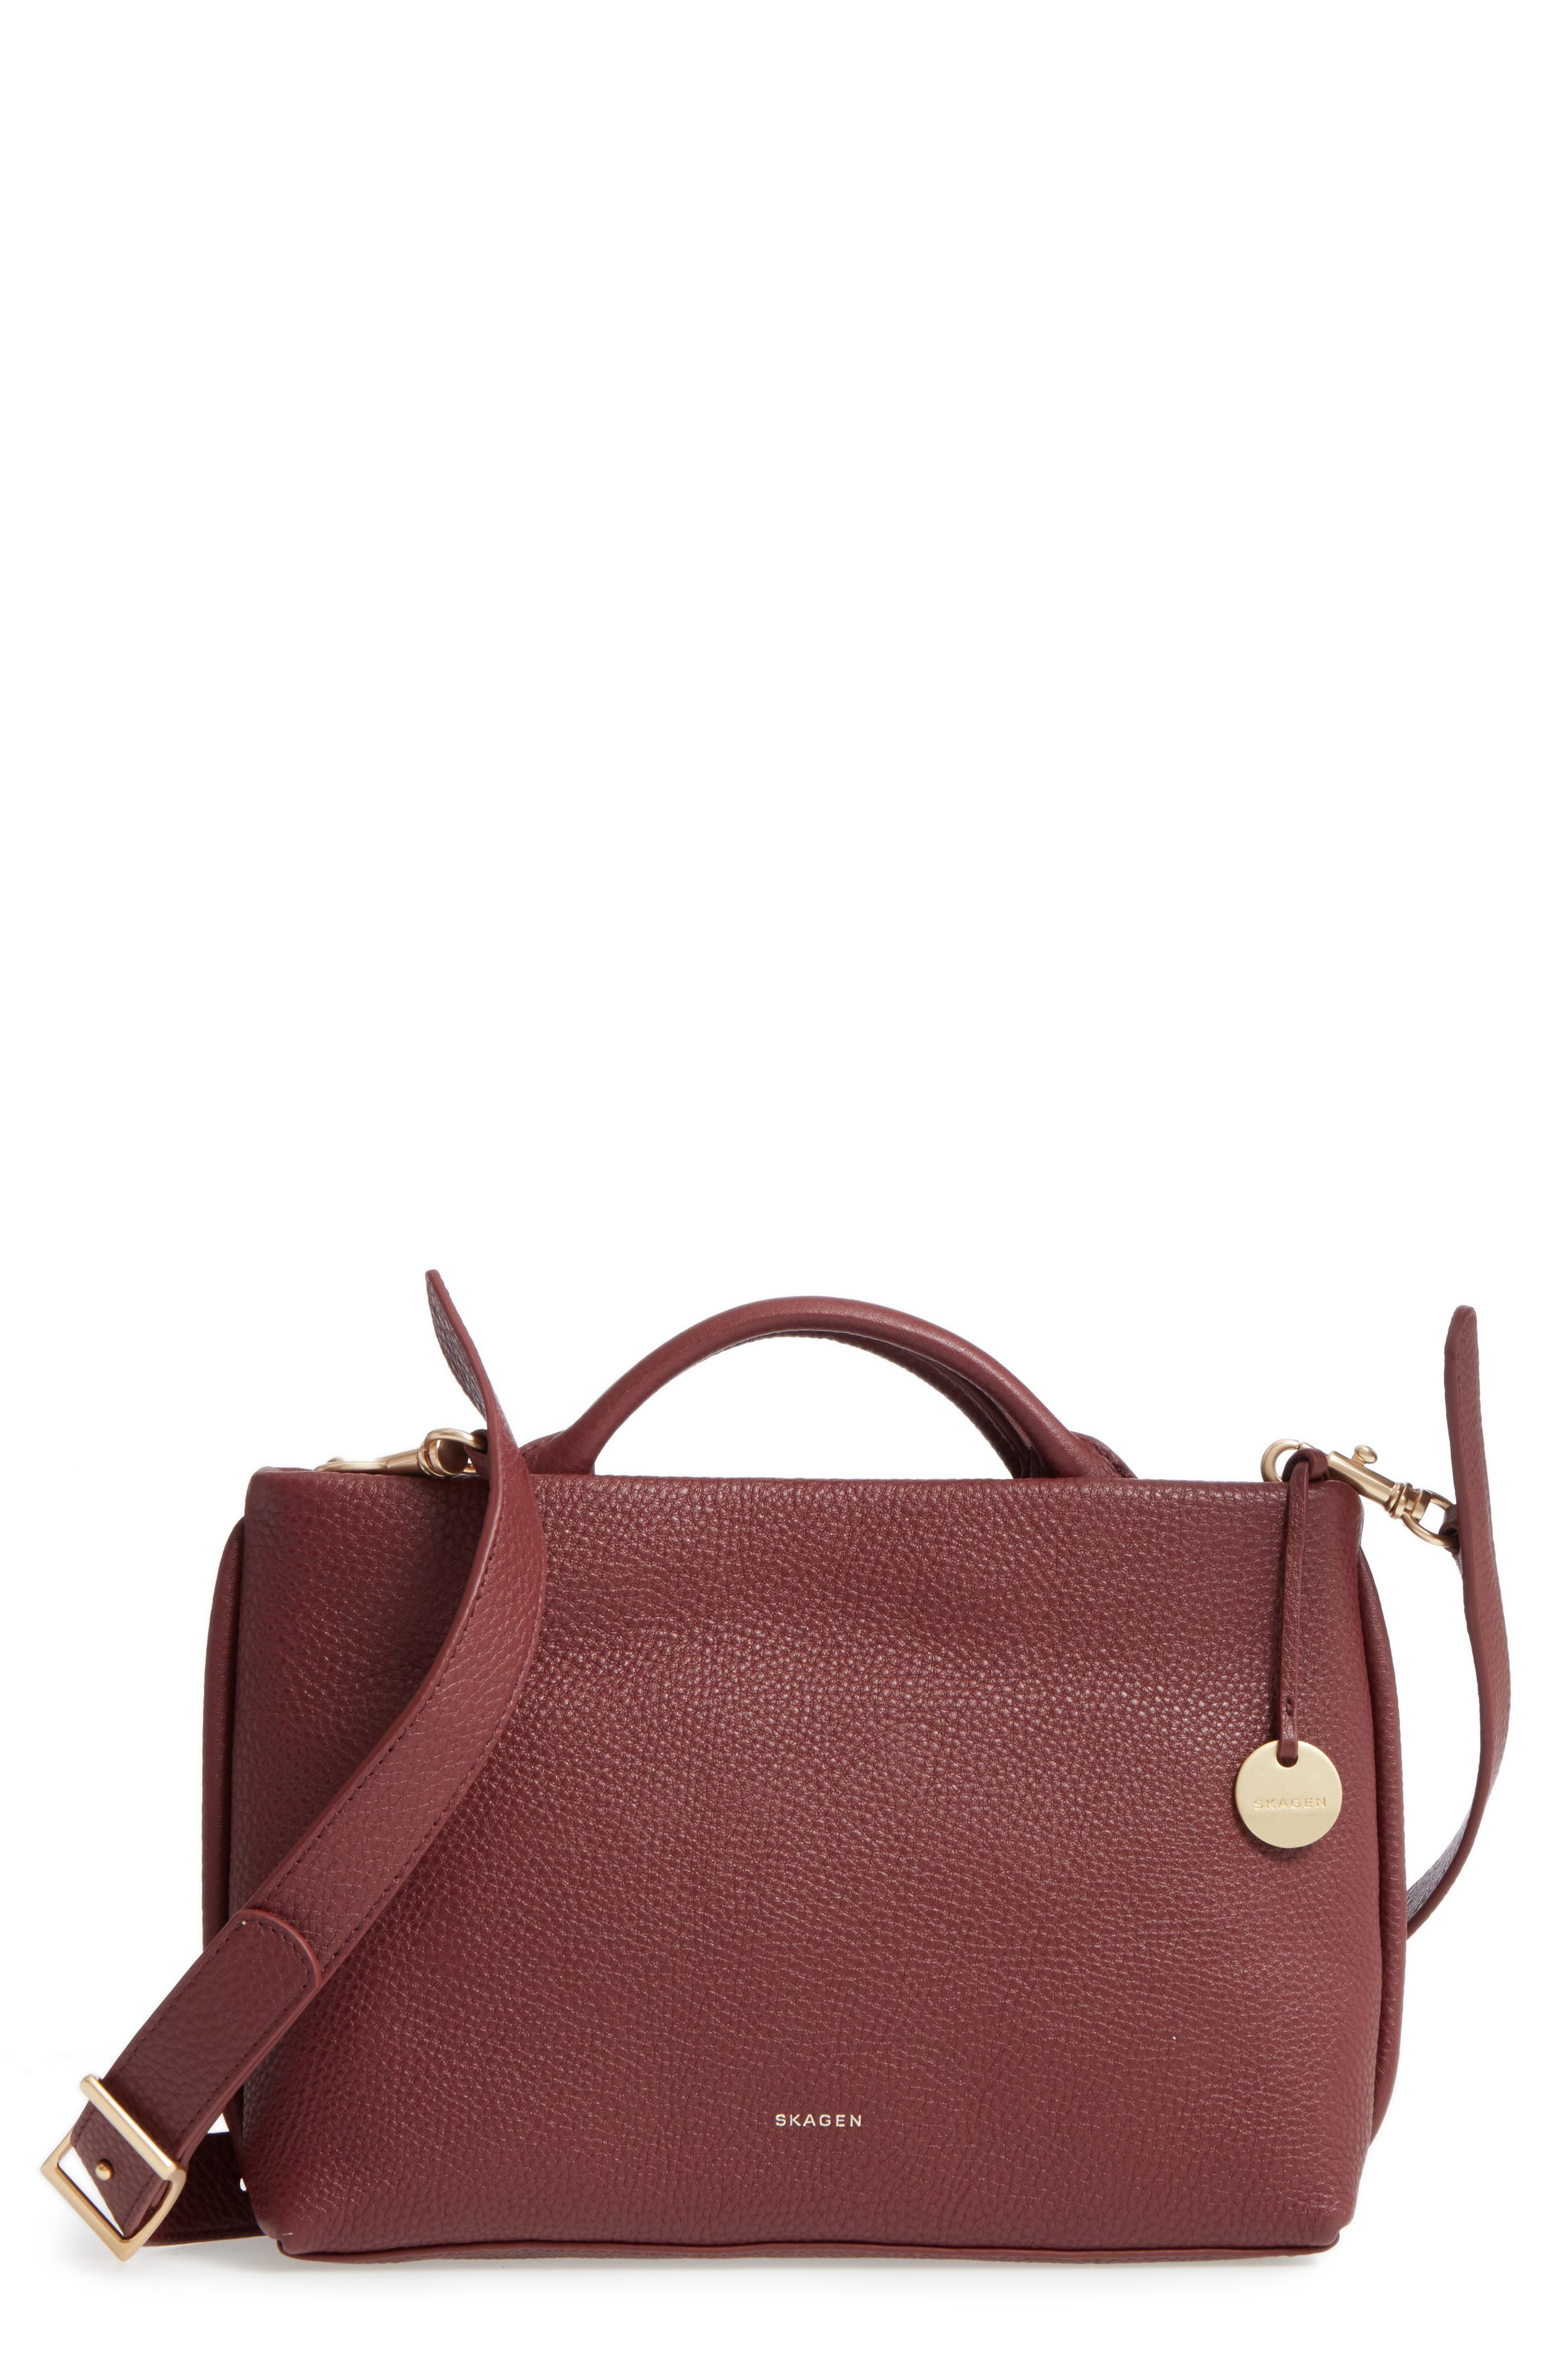 Alternate Image 1 Selected - Skagen Mikkeline Mini Leather Satchel